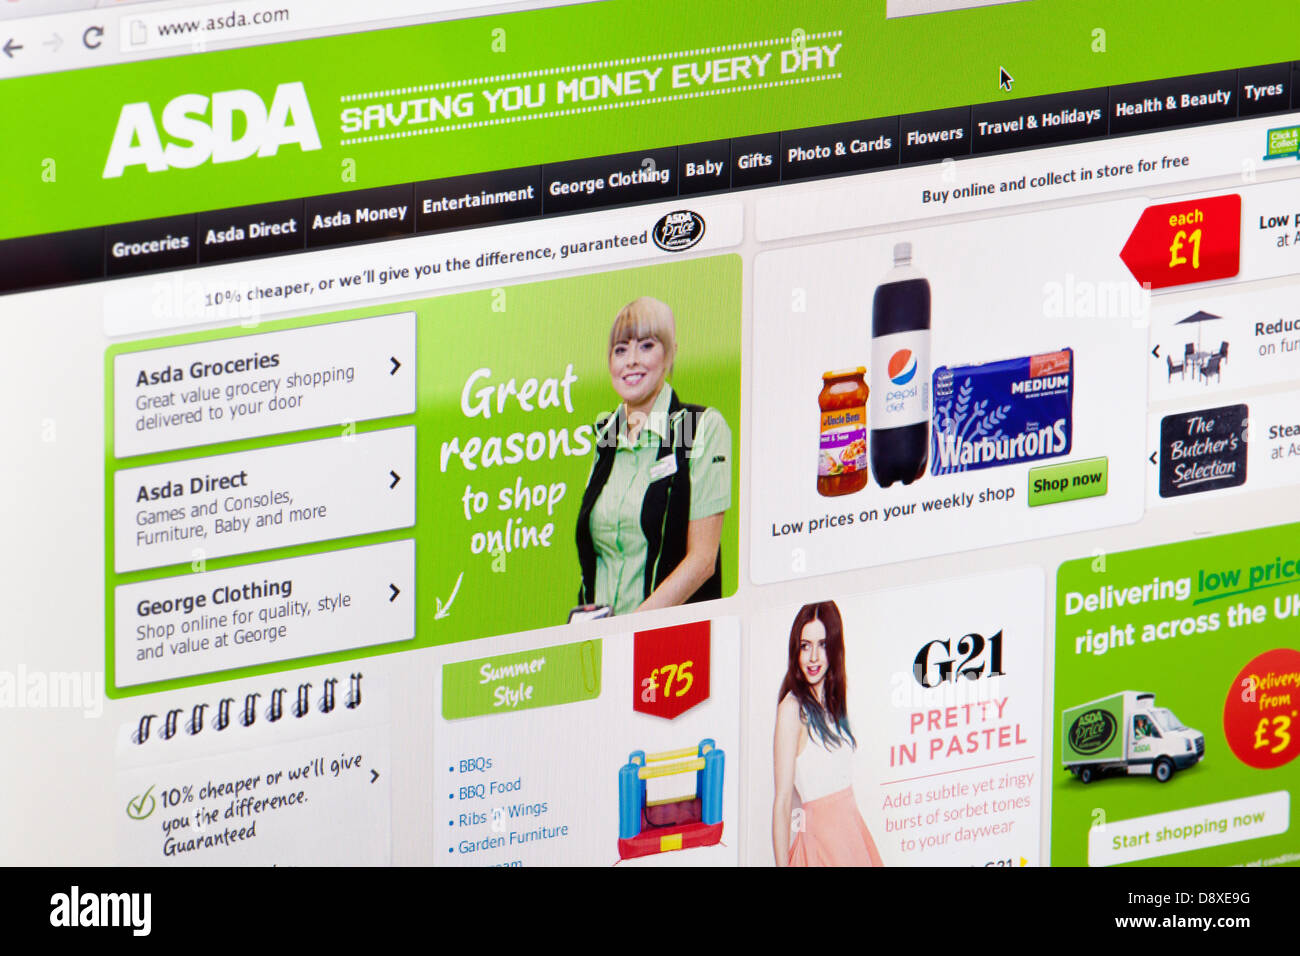 asda-online-grocery-shopping-website-or-web-page-on-a-laptop-screen-D8XE9G.jpg